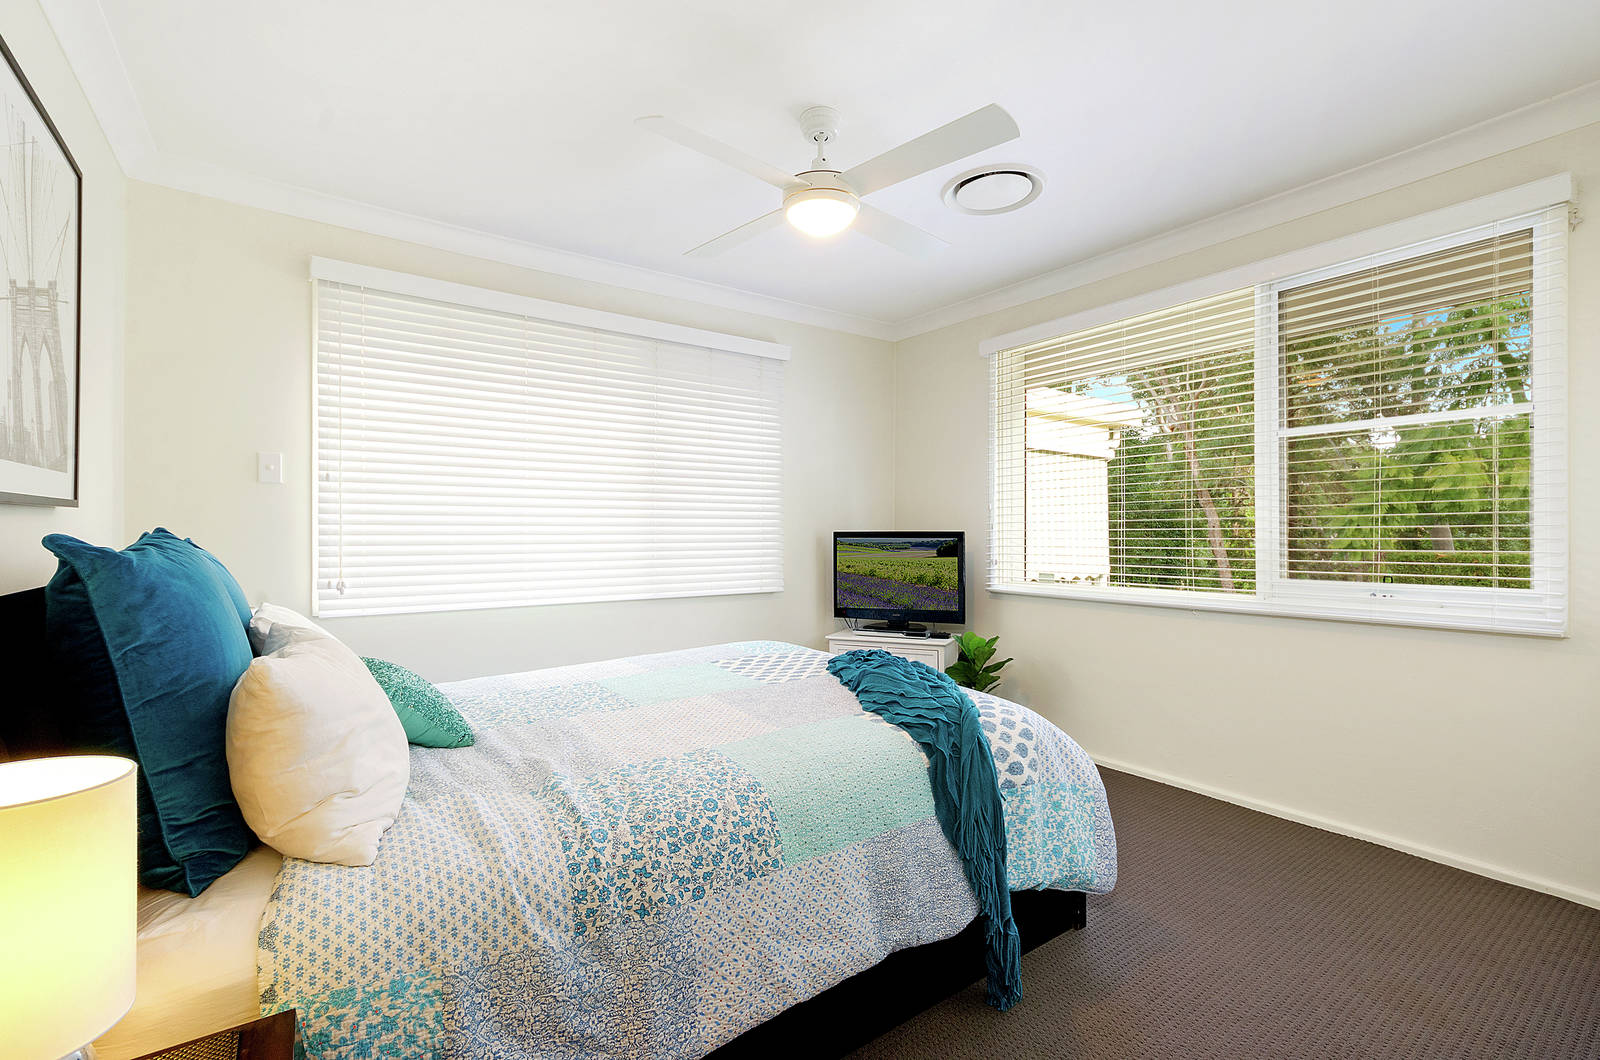 Baulkham Hills Rd Bedroom